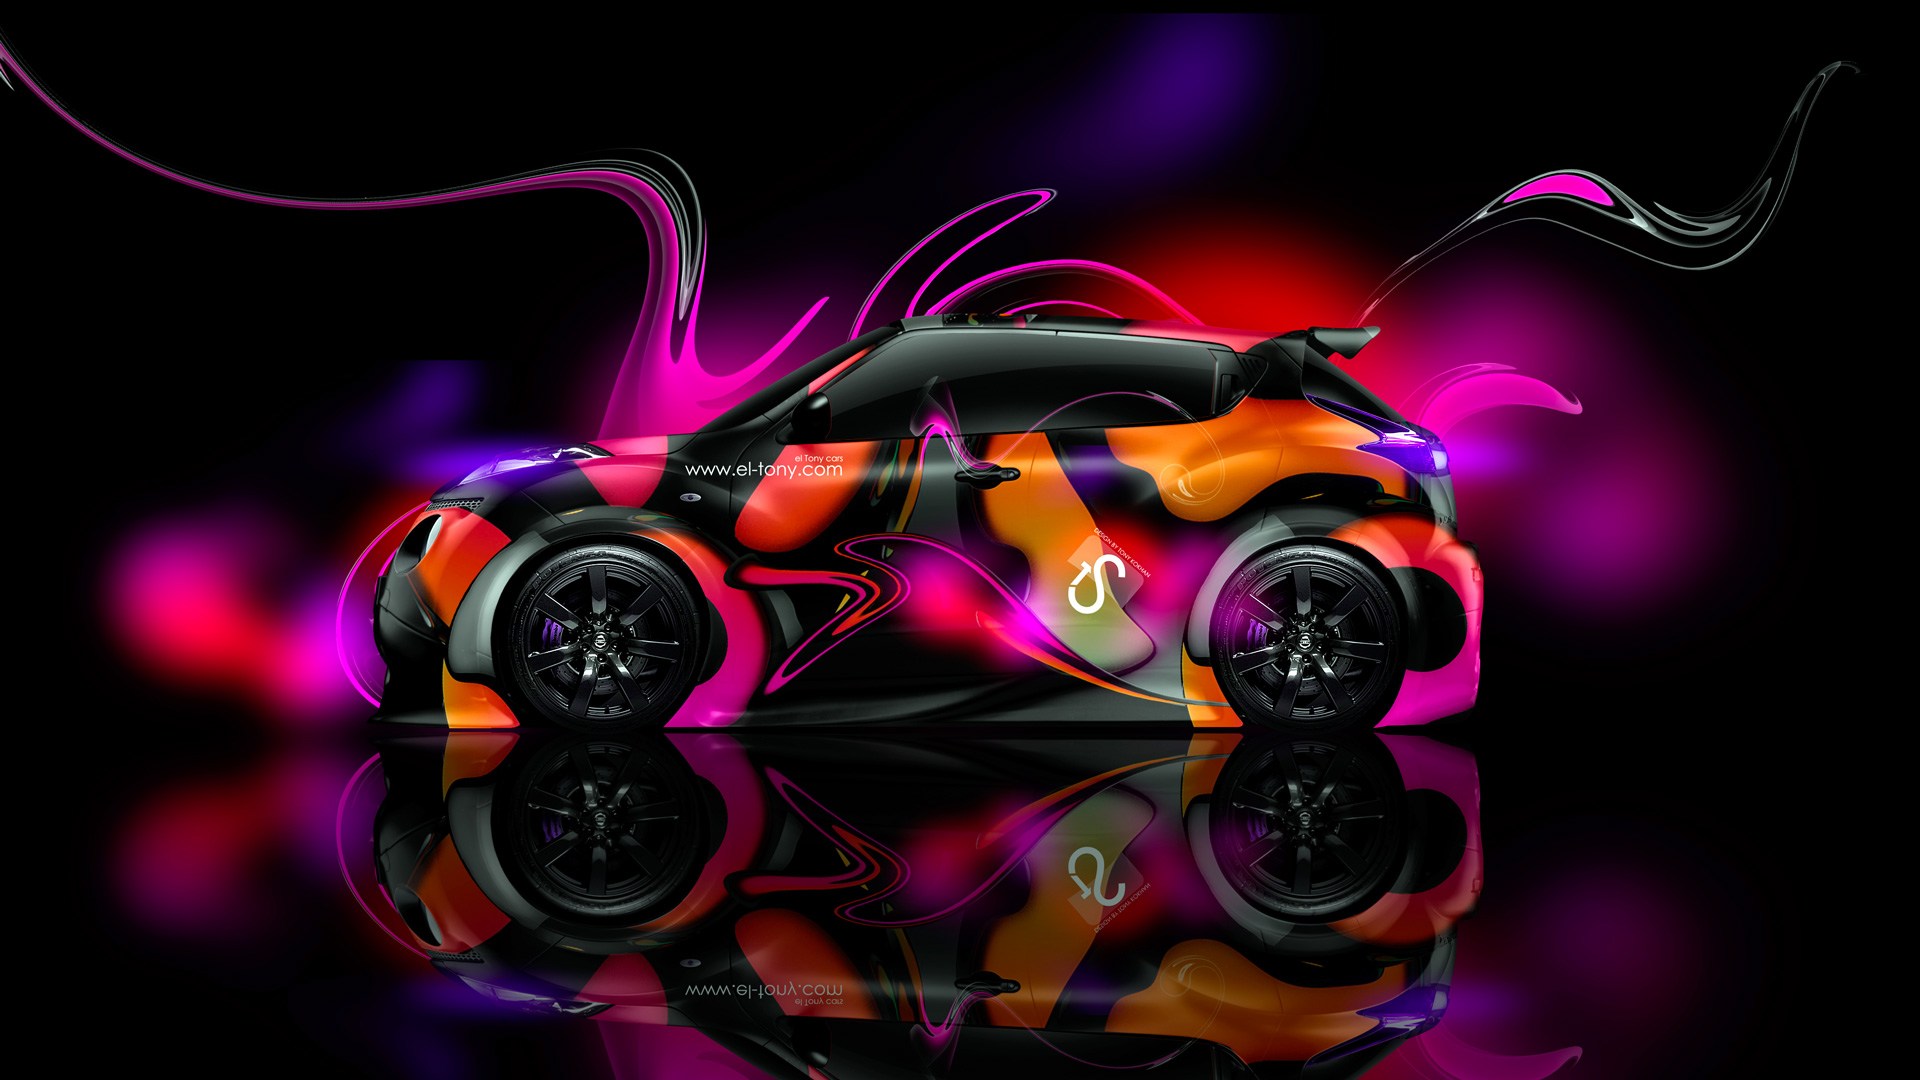 Nissan Juke R Super Abstract Car 2014 HD